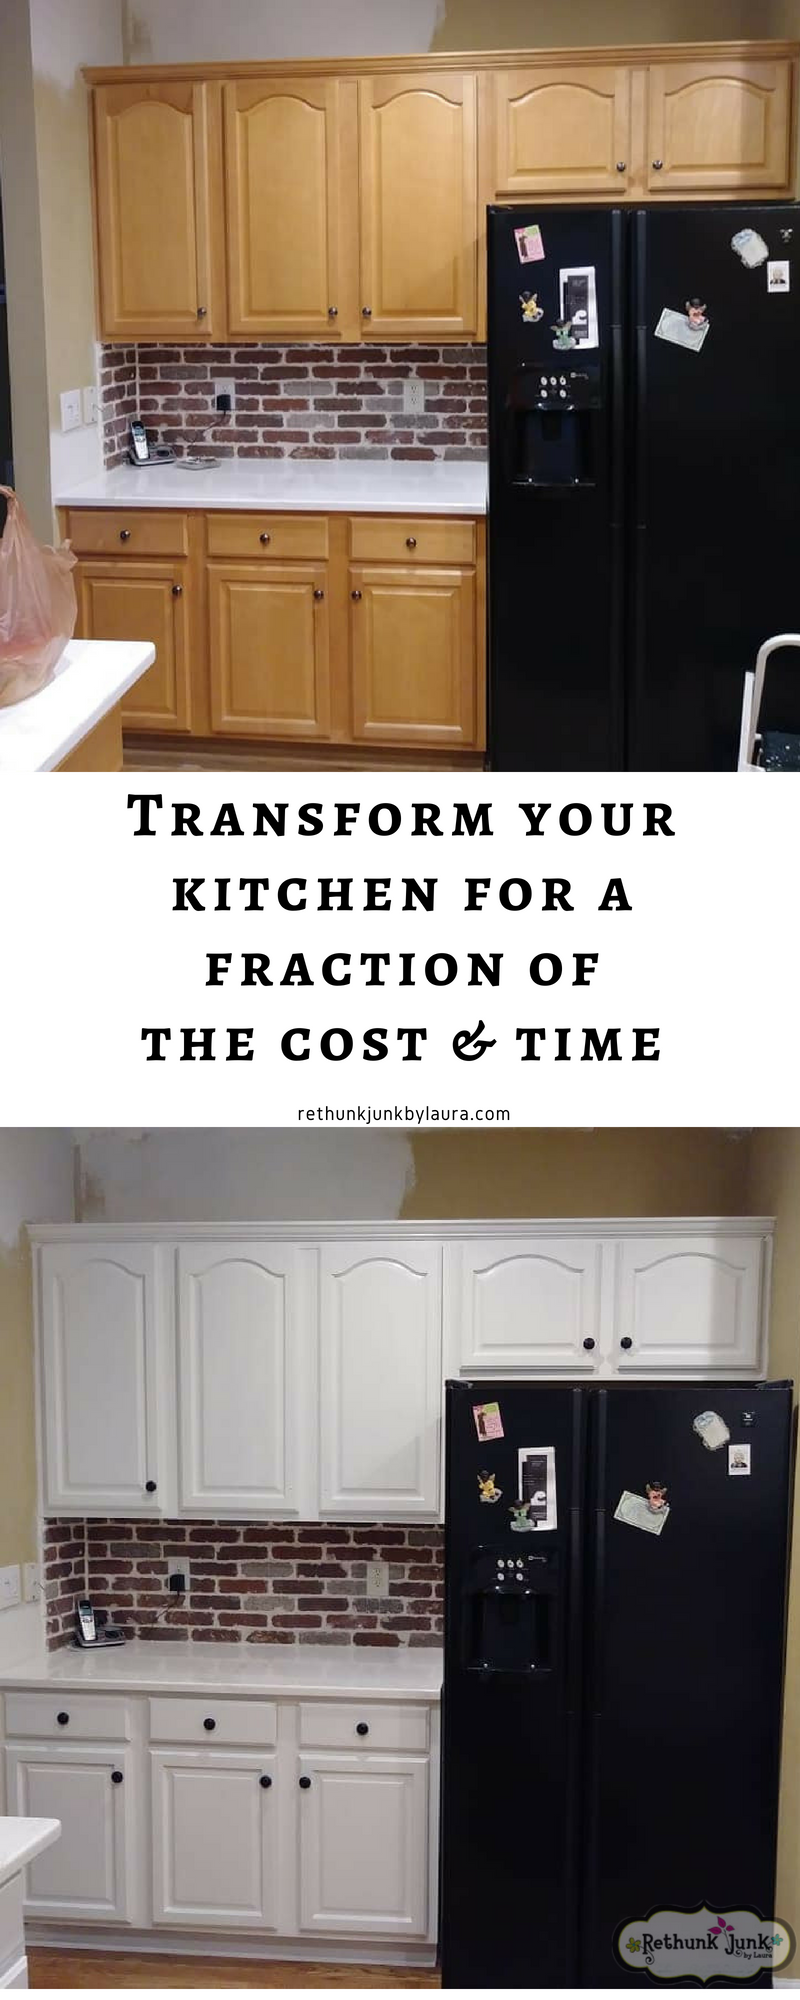 2 Year Chalk Painted Kitchen Cabinets Update Annie Sloan Chalk Paint Youtube Chalk Paint Kitchen Chalk Paint Kitchen Cabinets Milk Paint Kitchen Cabinets